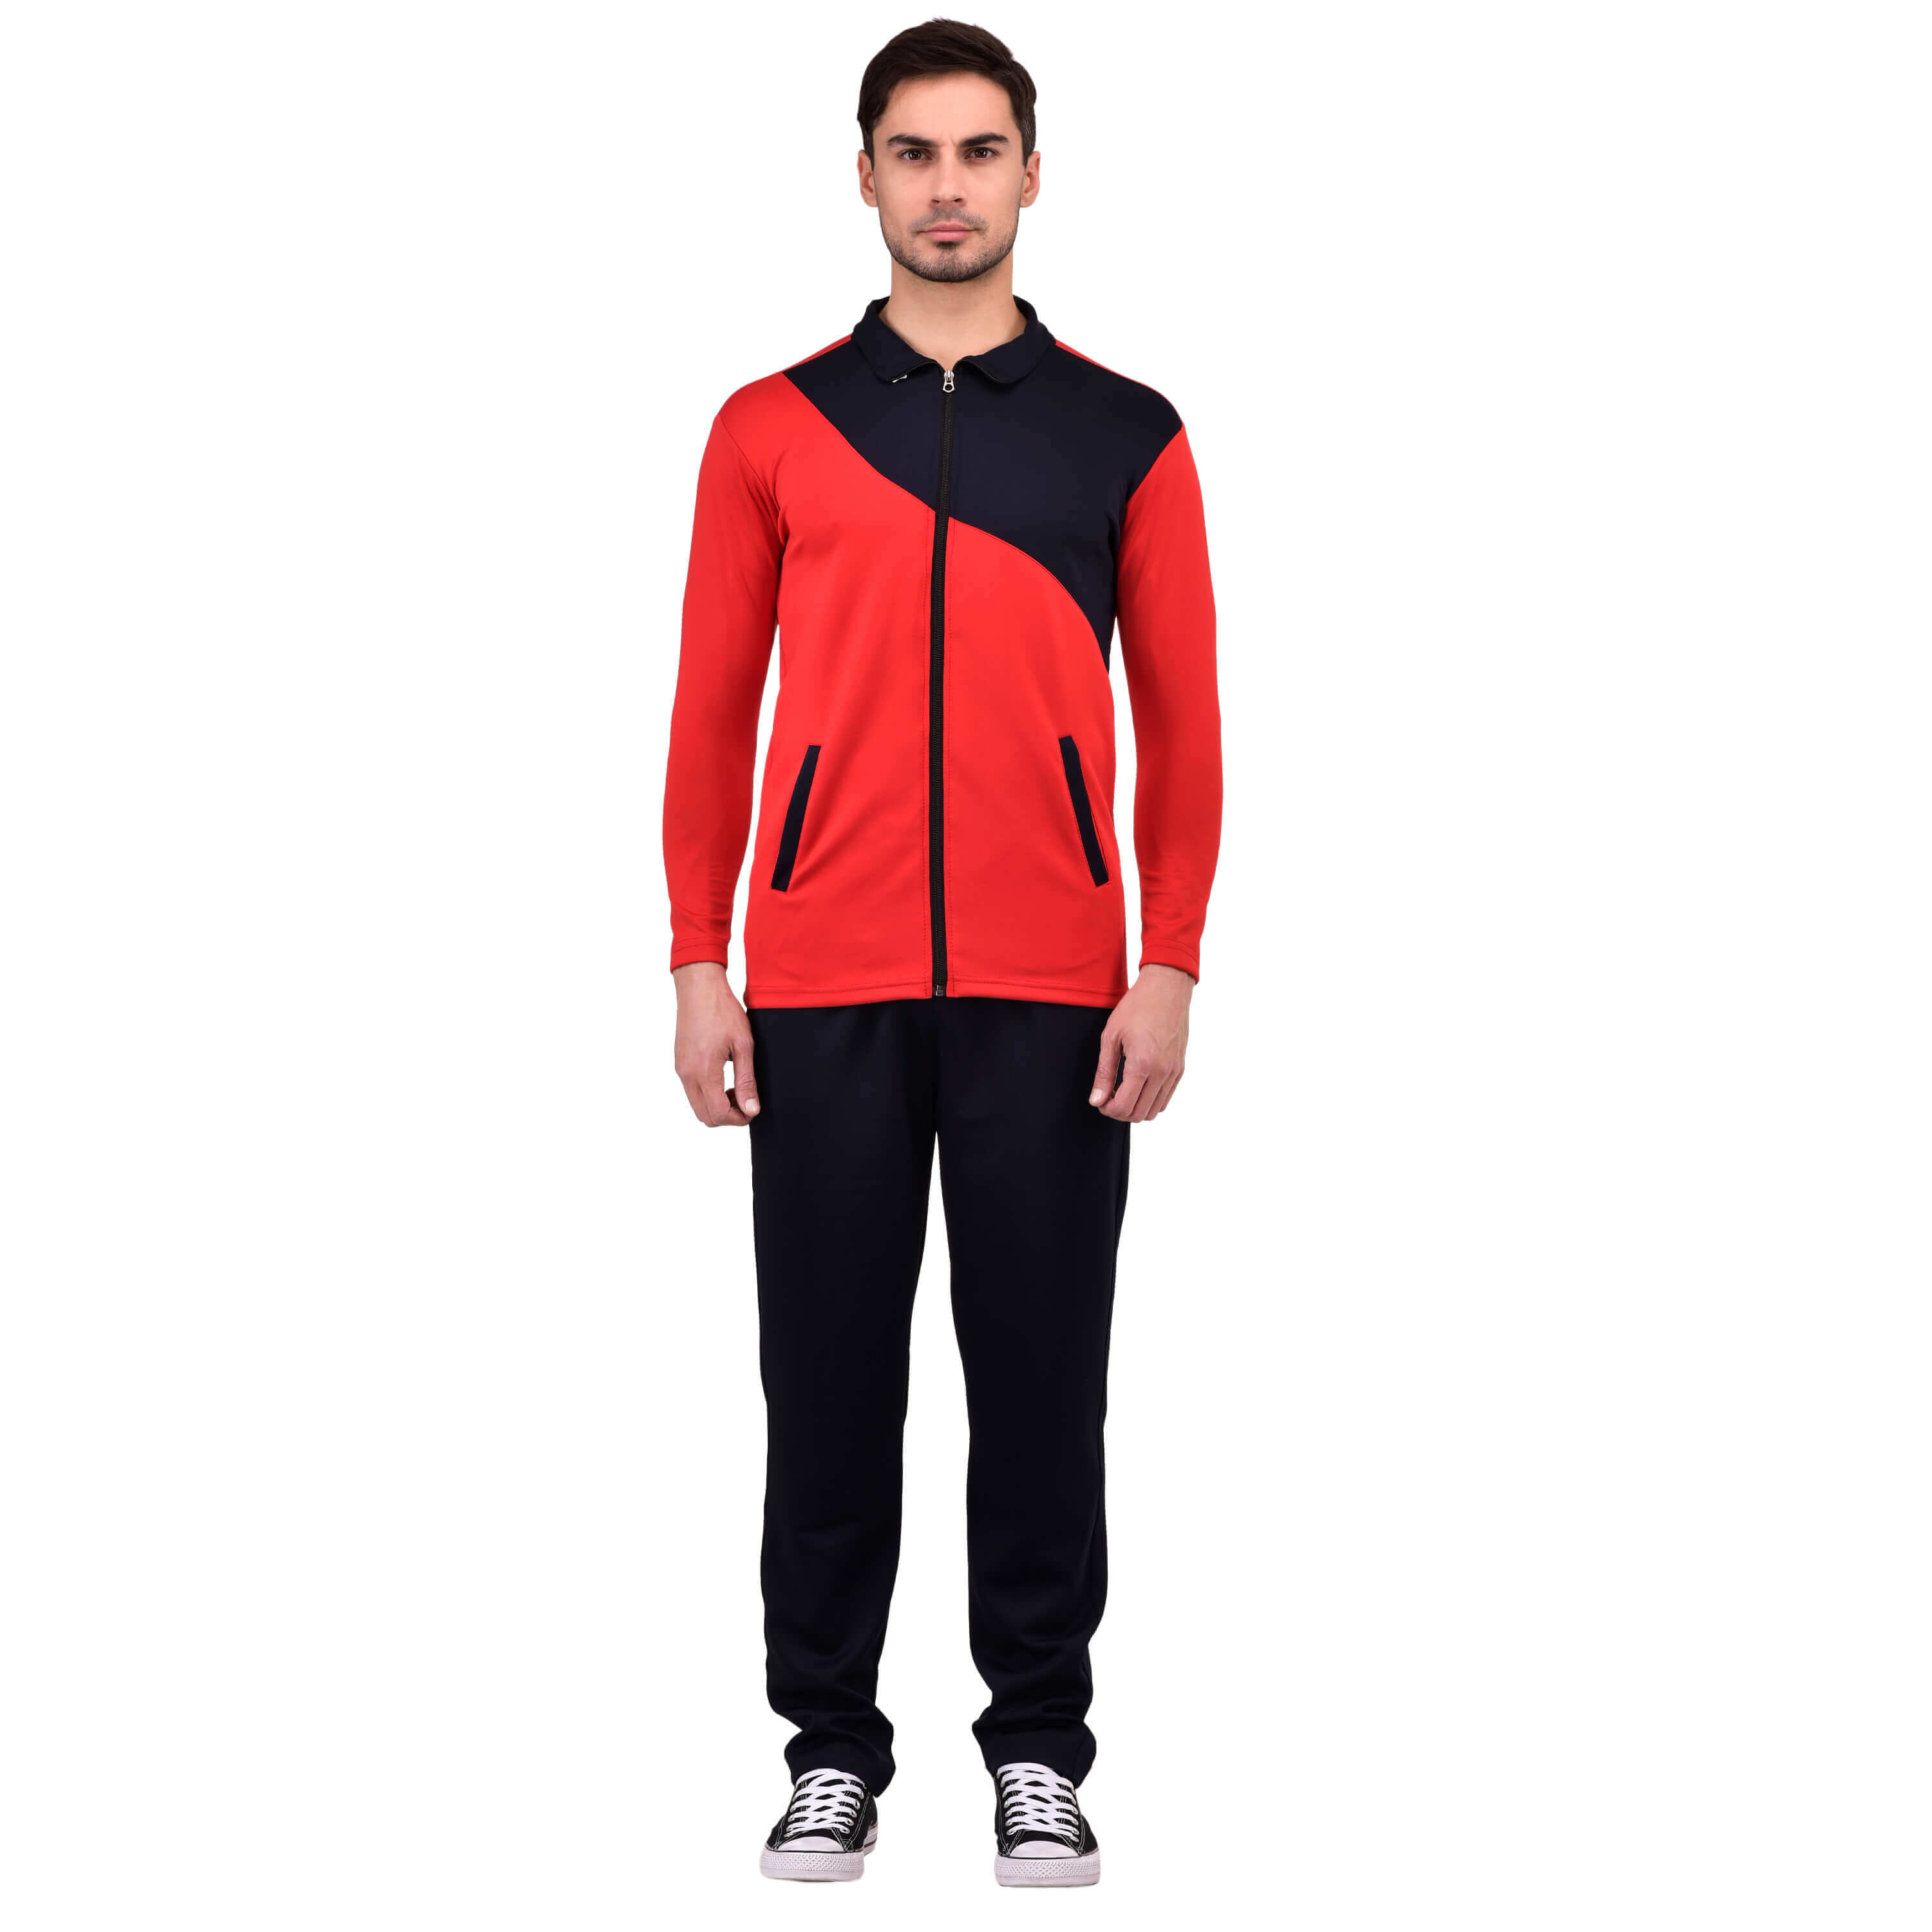 Mens Jogging Suits Manufacturers in Noida